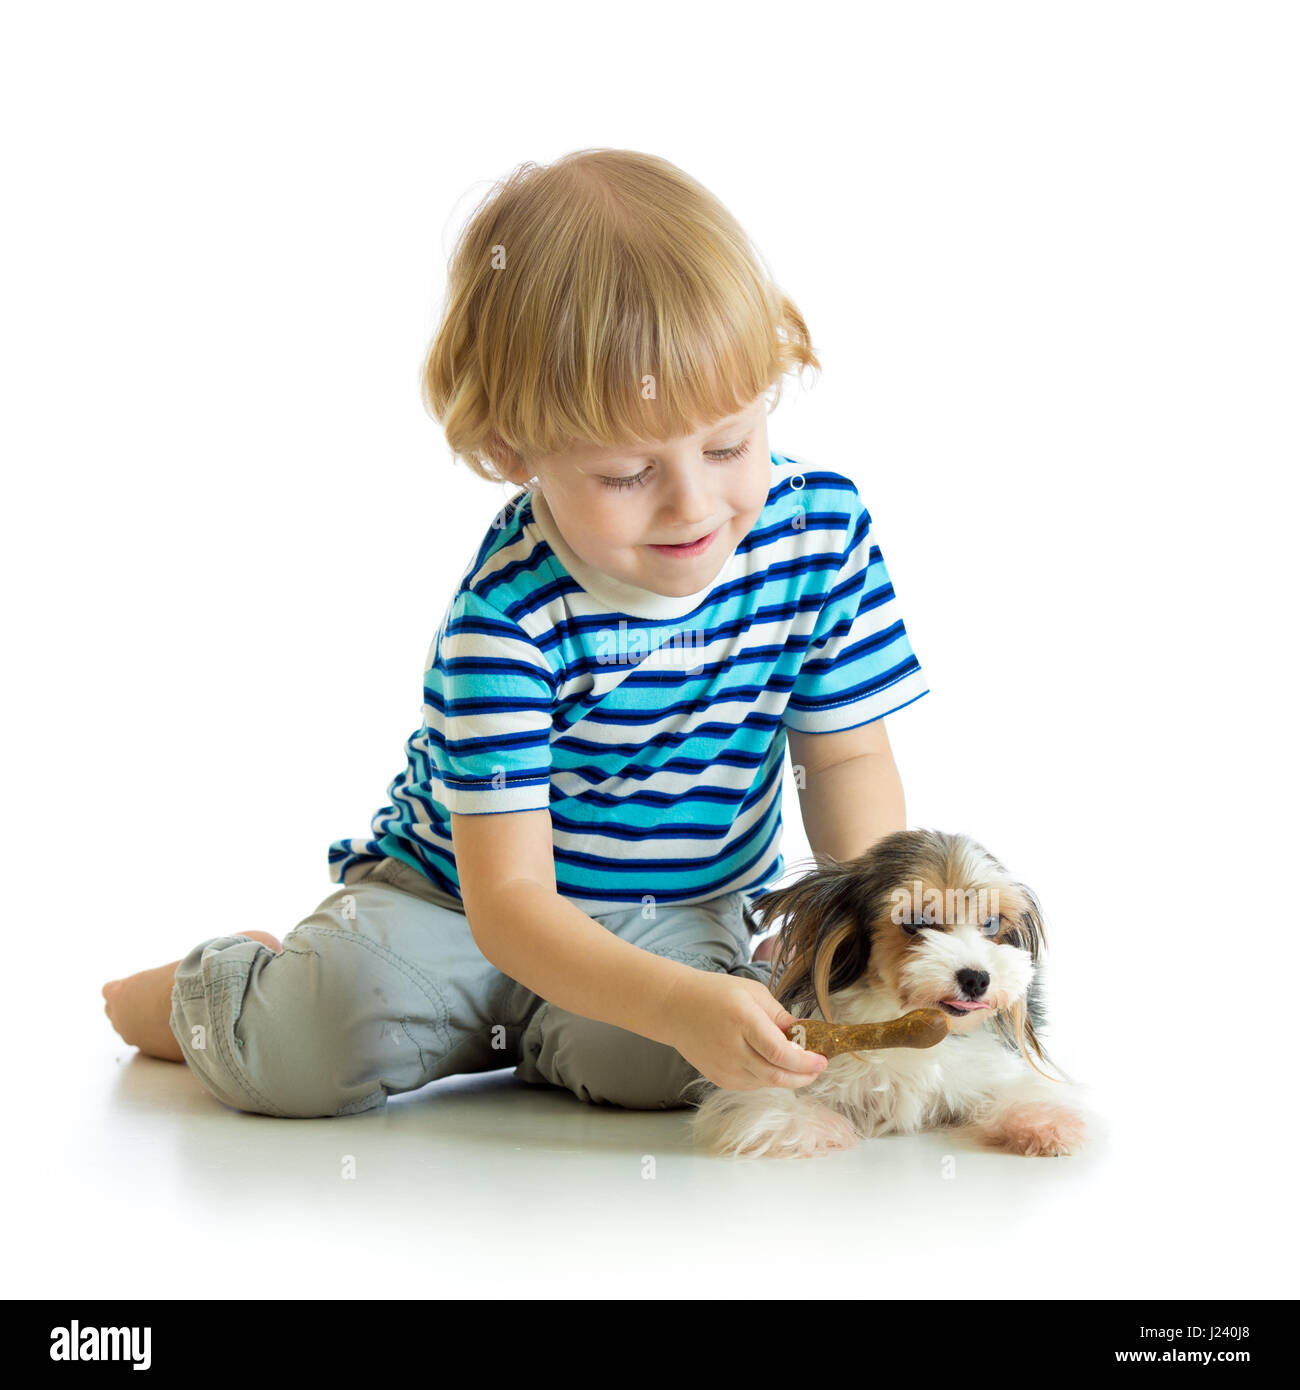 Child feeds dog puppy isolated on white background - Stock Image